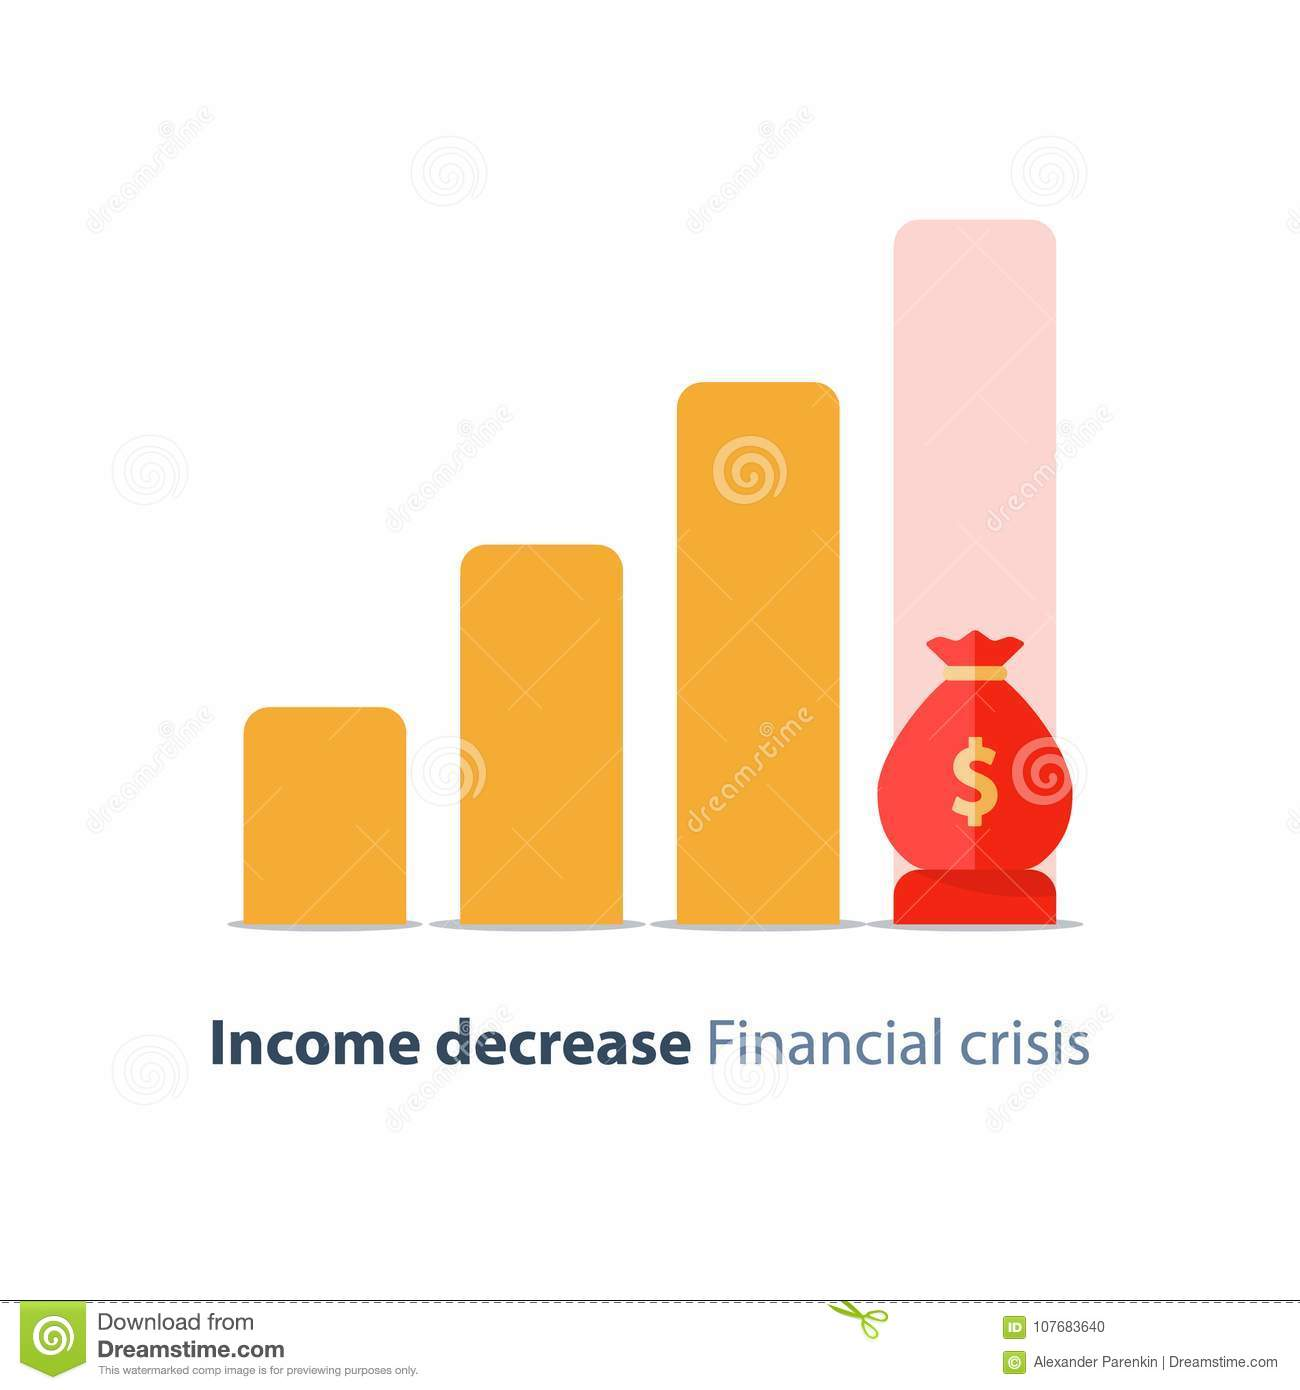 Budget deficit, income decrease, economy decline, financial crisis, investment risk